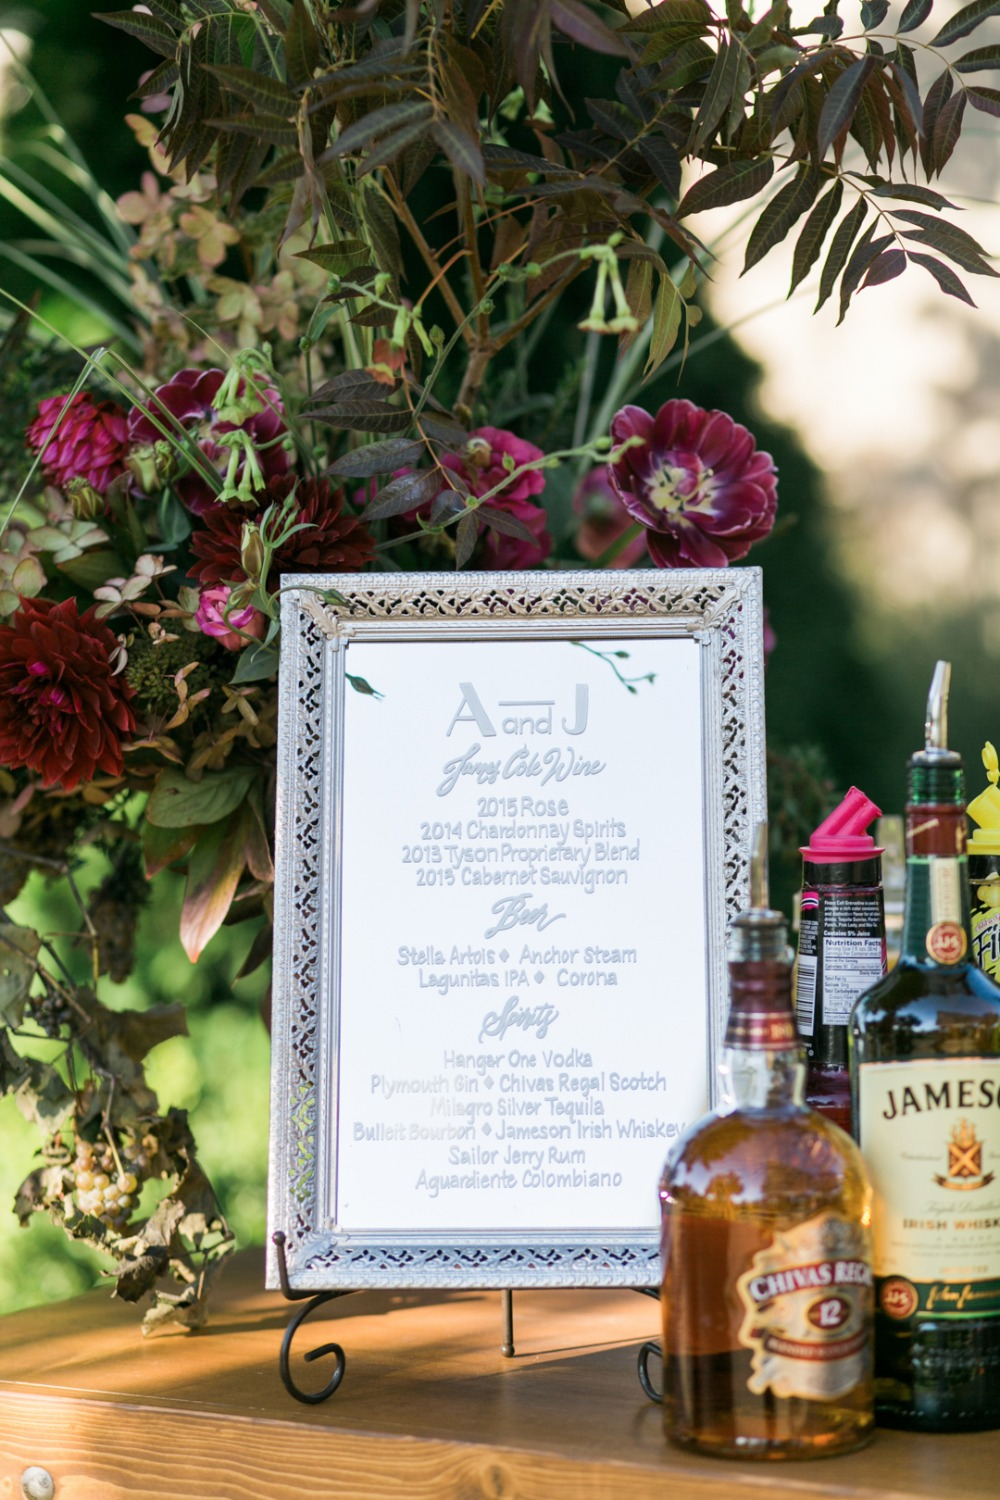 build your own gin and tonic wedding bar